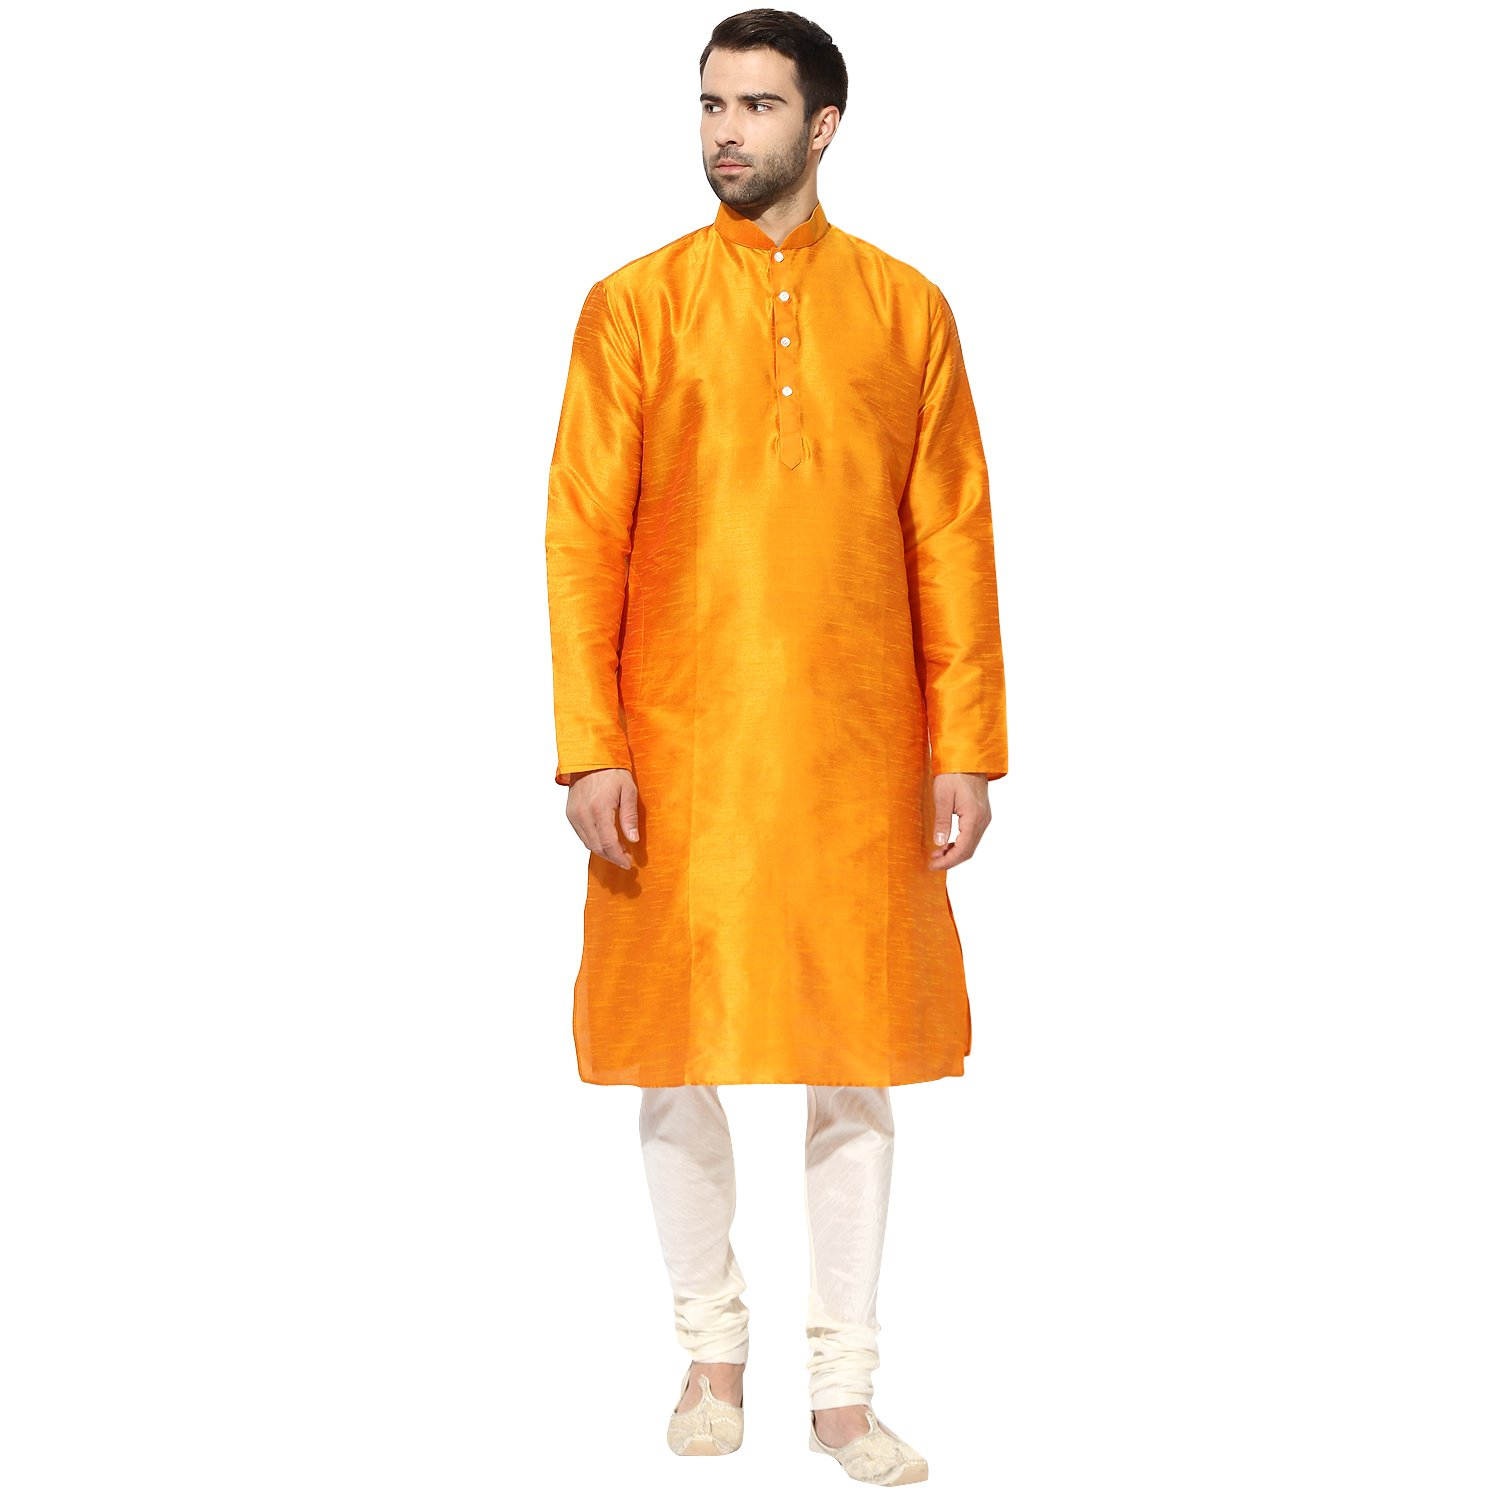 KISAH Men's Indian Kesaria Yellow Dupion Silk Solid Kurta Churidar Set for Wedding & Festive Season